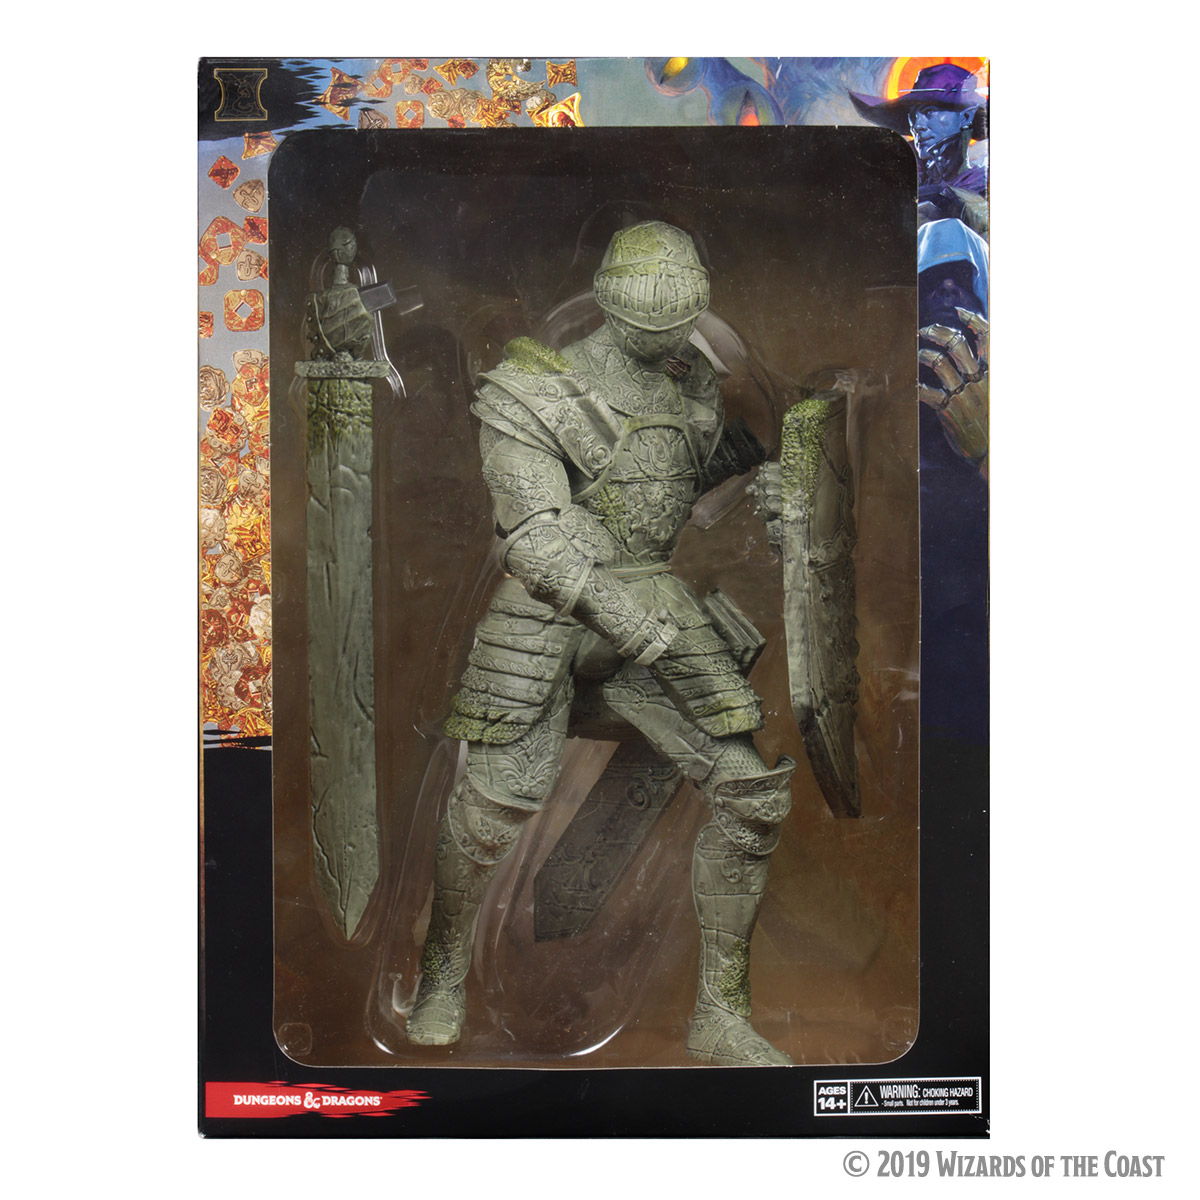 D&D Icons of the Realms Miniatures: Walking Statue of Waterdeep – The Honorable Knight